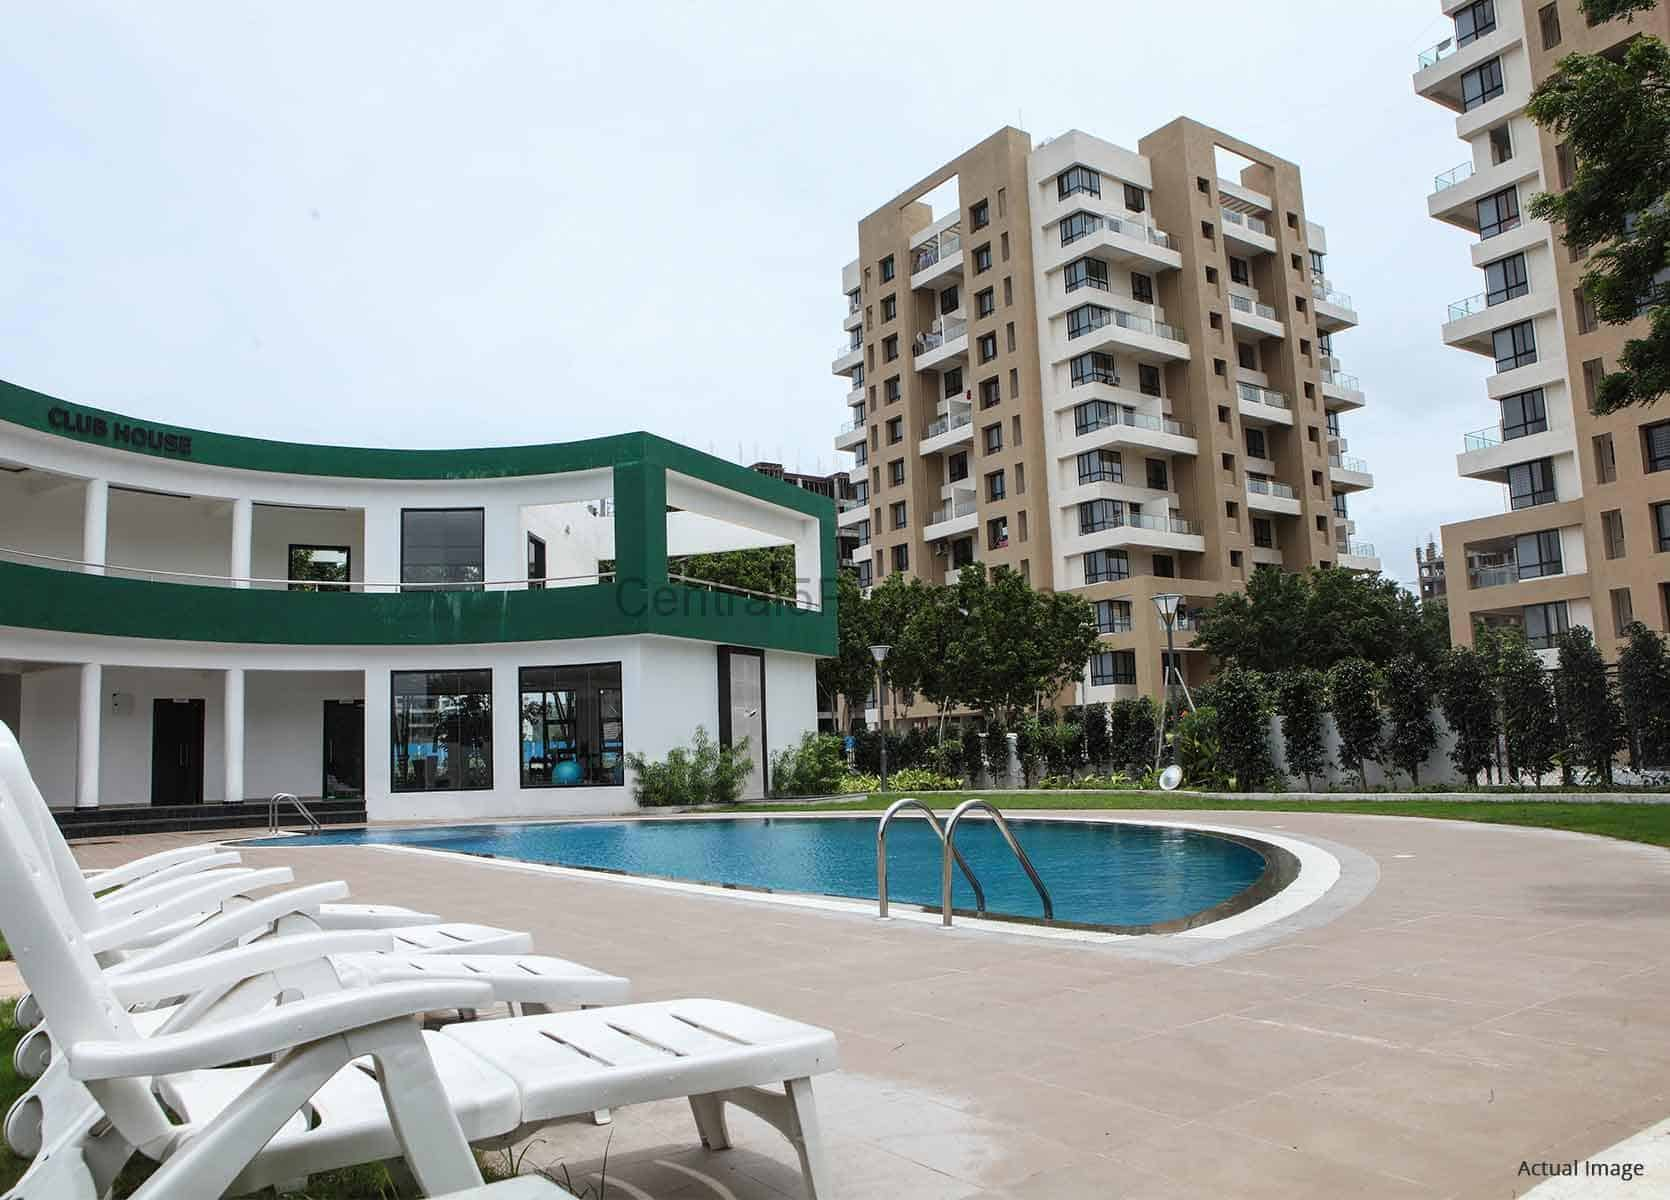 Apartments to buy in Wagholi Pune